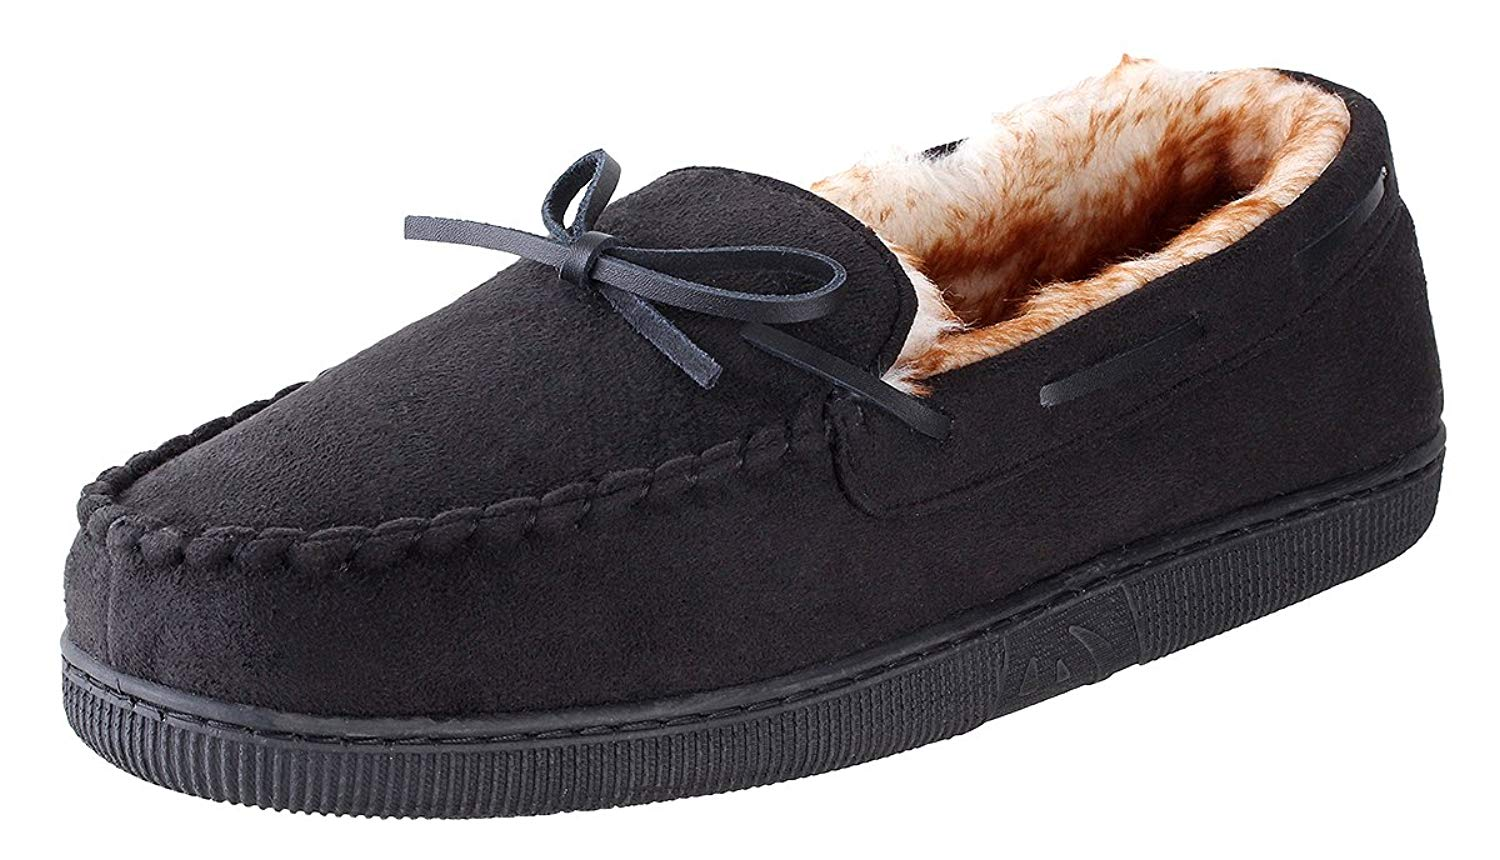 Urban Fox Franklin Moccassin Slippers Mens | Micro-Suede | Rubber Sole | Faux Fur Lining | Comfortable Indoor and Outdoor Slippers | Slippers For Men | Slip-On Slippers For Men